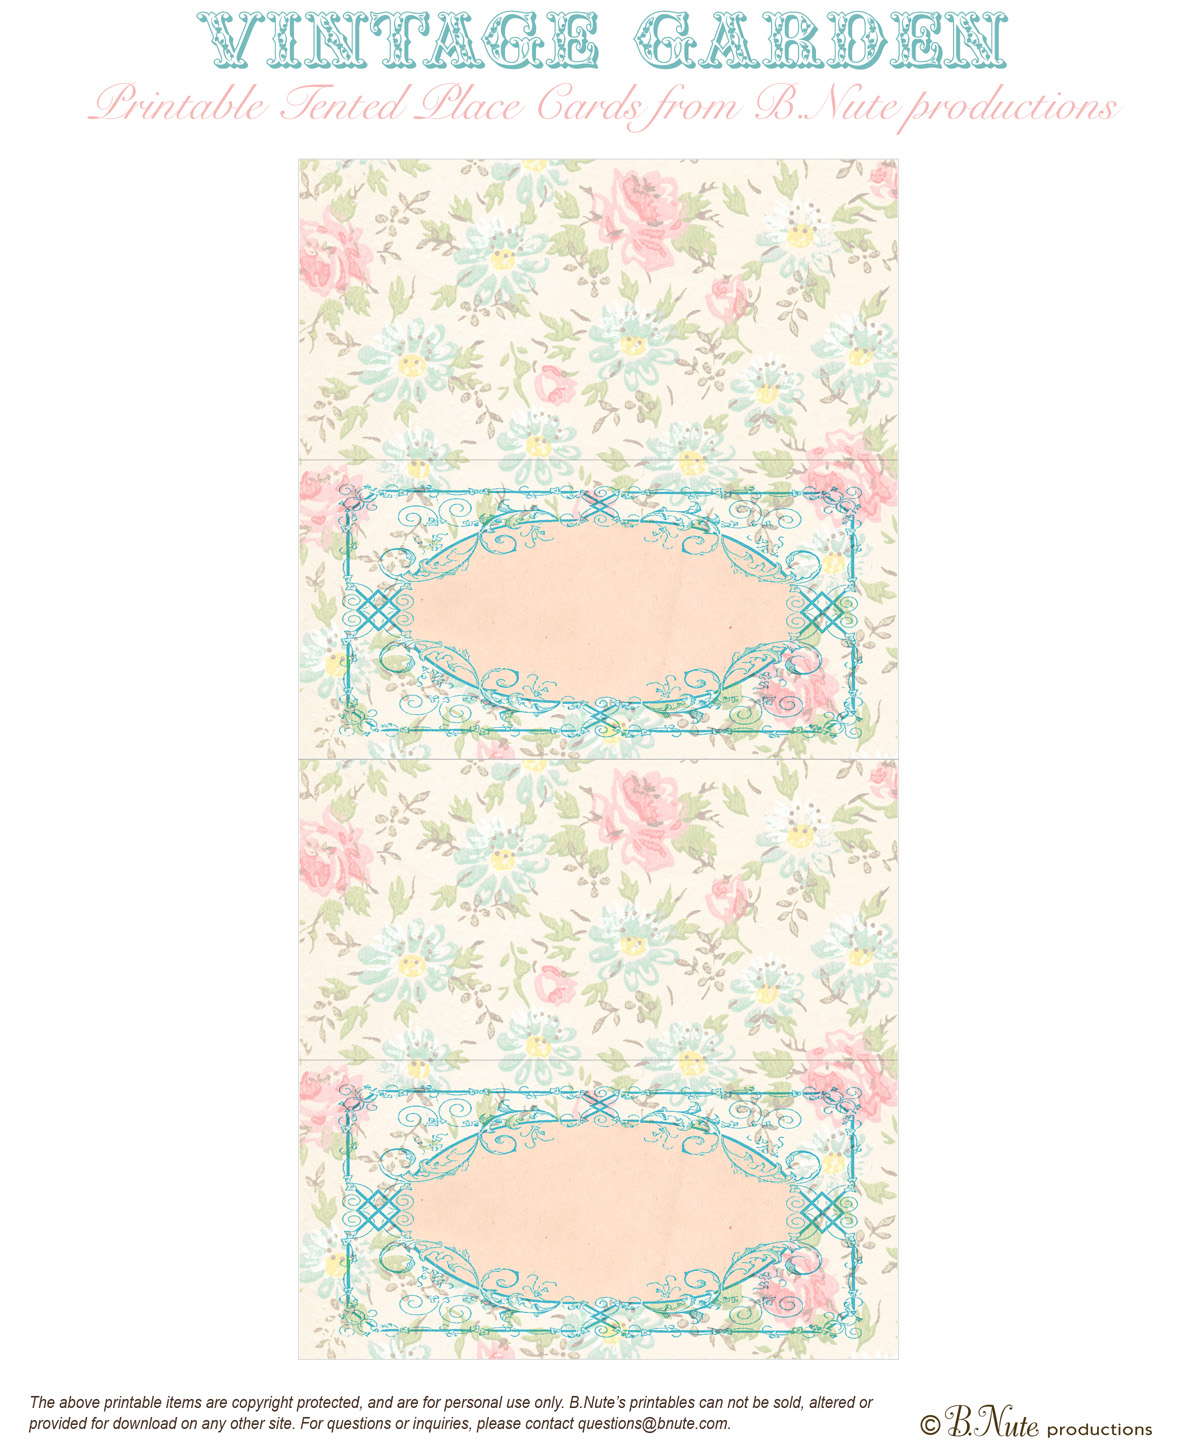 Tea Party Free Printables Bnute Productions Printable Vintage Garden Placecards